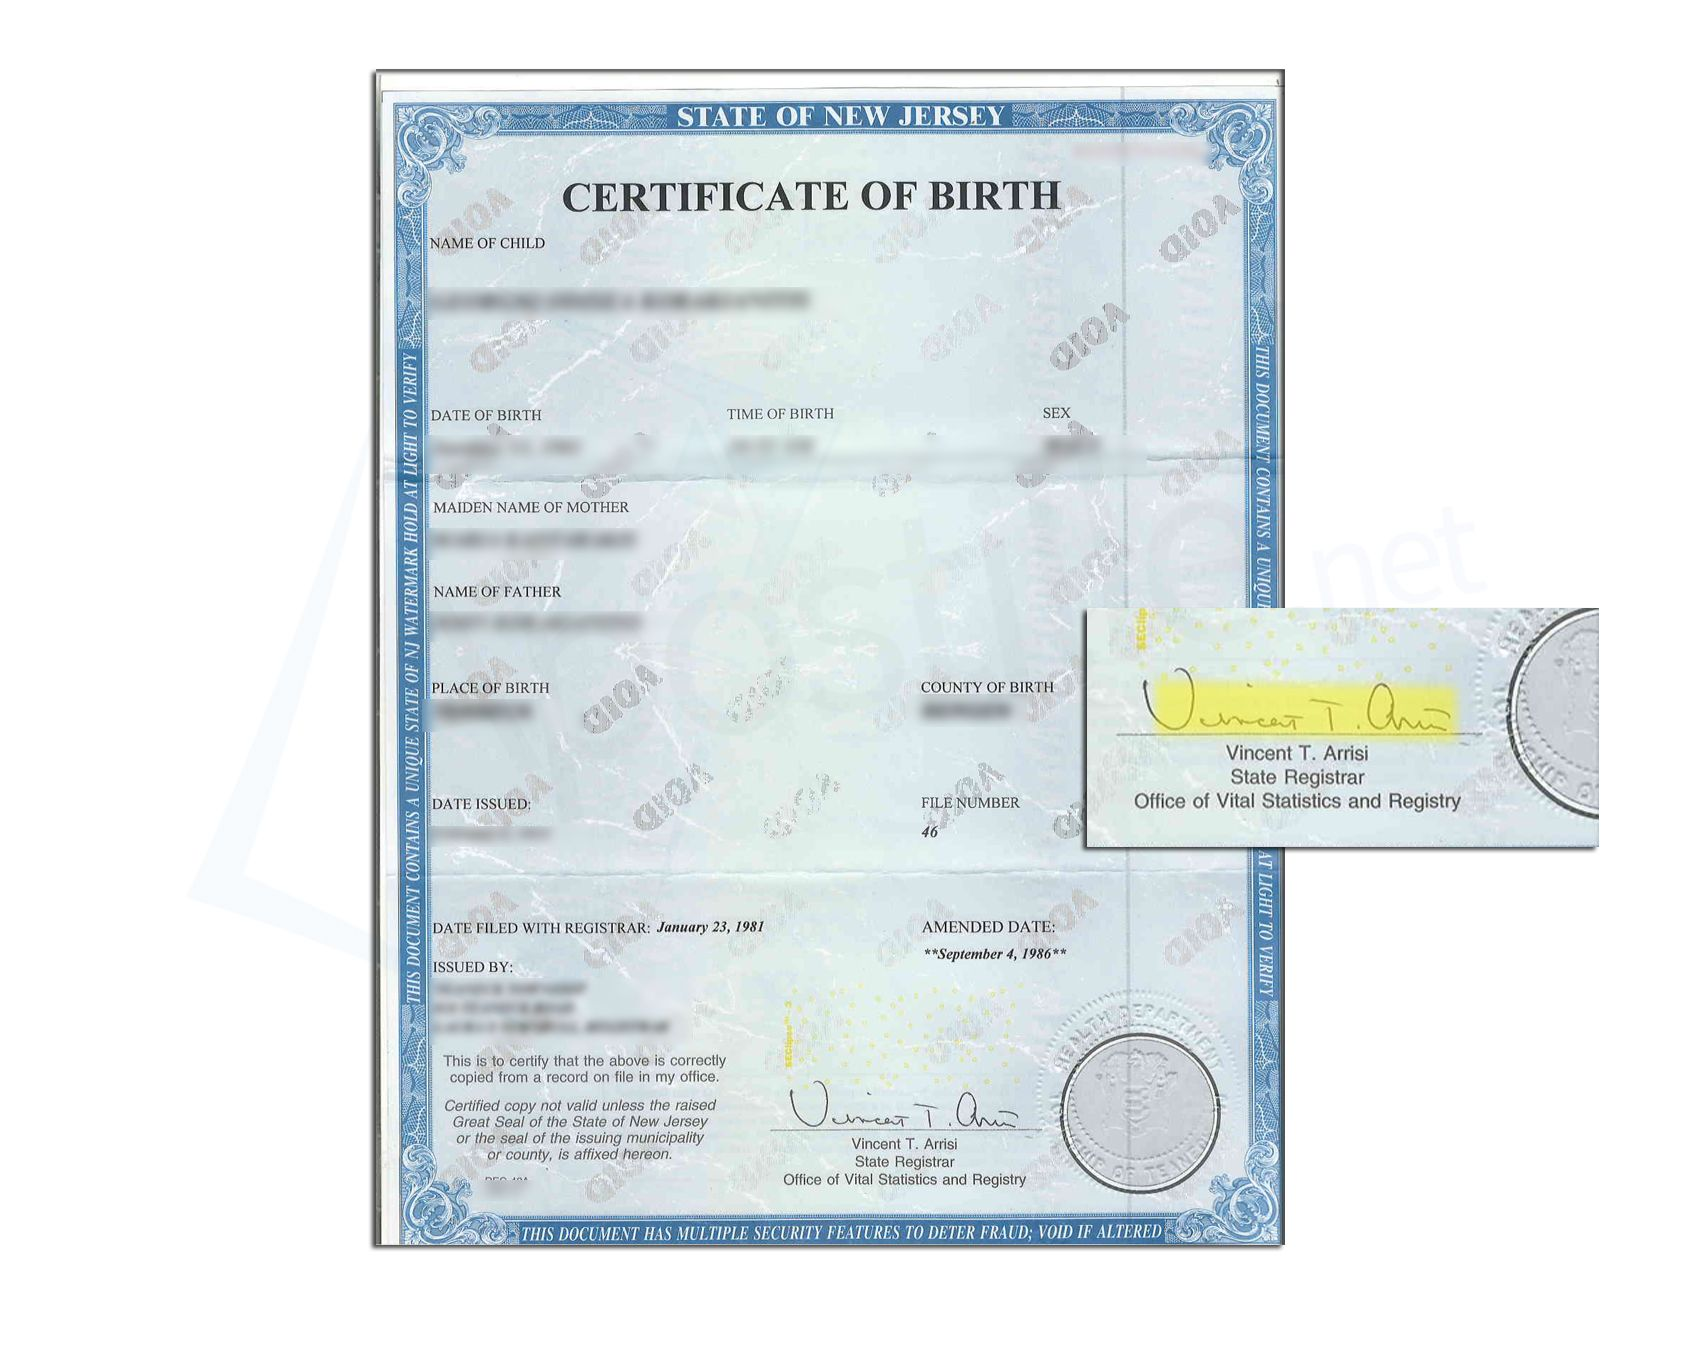 Best 25 certificate of birth ideas on pinterest copy of birth best 25 certificate of birth ideas on pinterest copy of birth certificate birth certificate copy and copy of marriage certificate xflitez Images